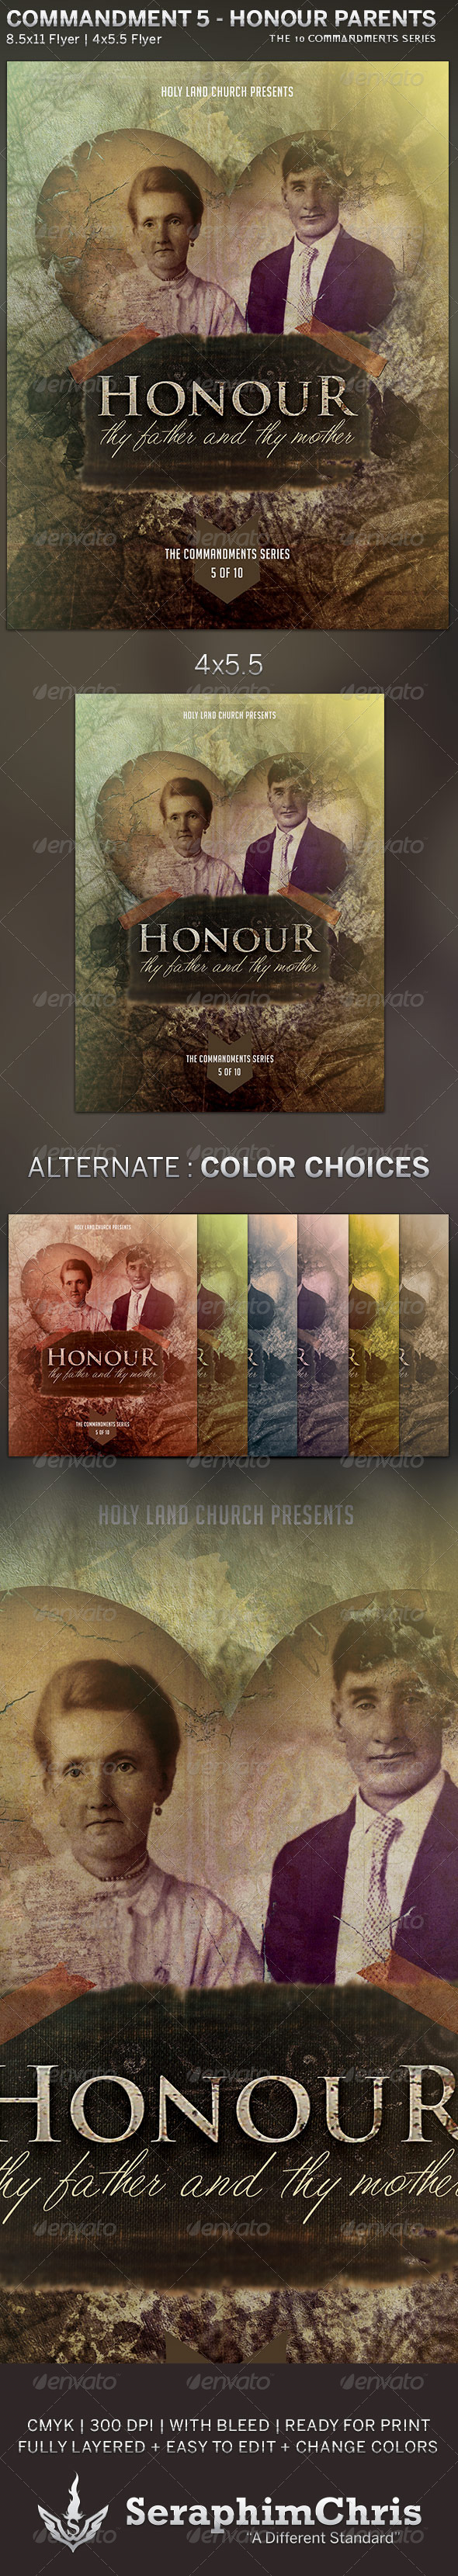 GraphicRiver Honour Father and Mother Church Flyer Template 5818903